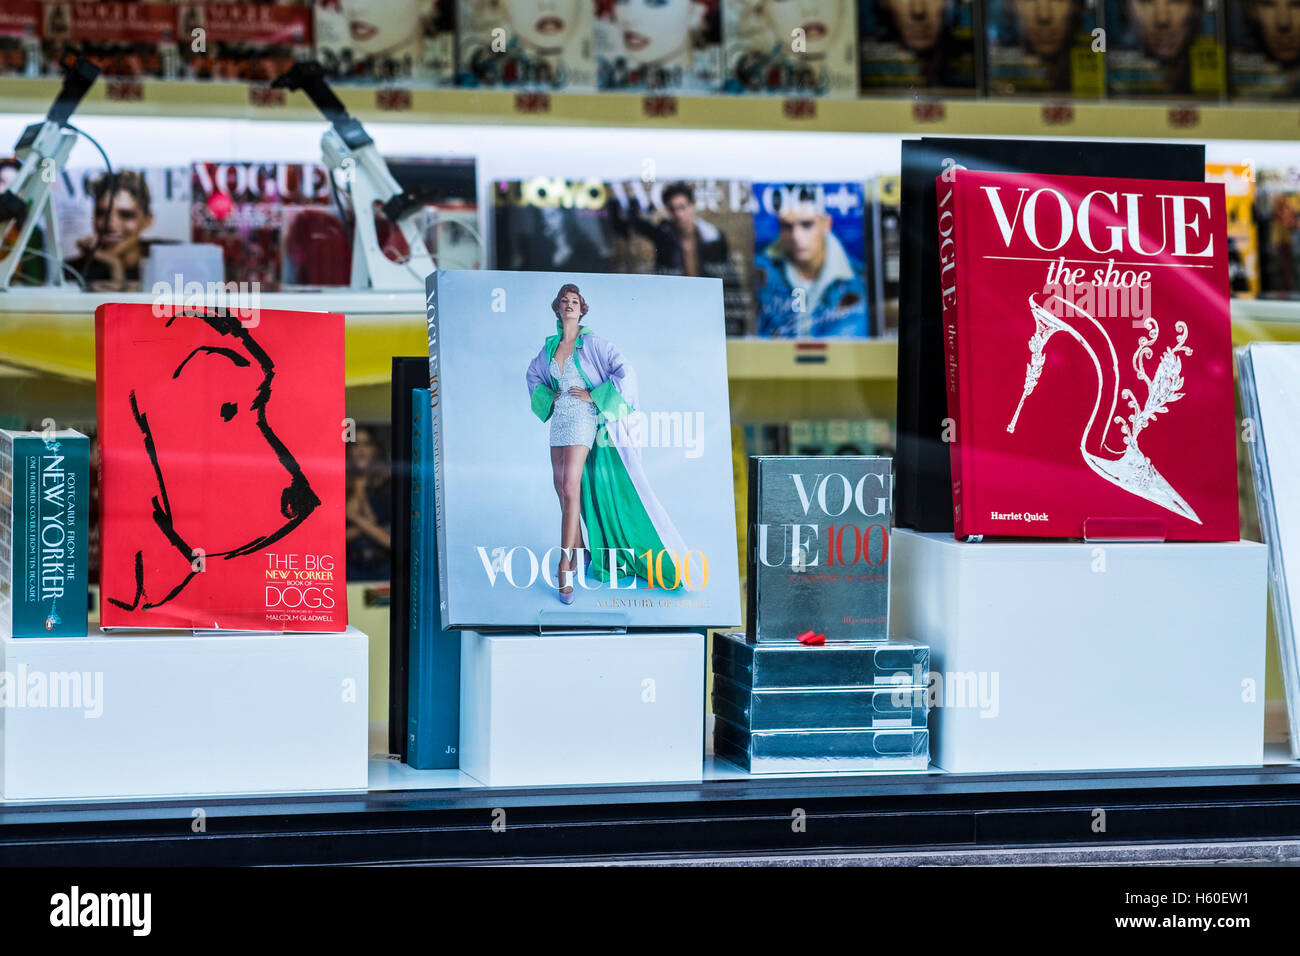 Maison Vogue, Hanover Square, Londres, Angleterre, Royaume-Uni Photo Stock